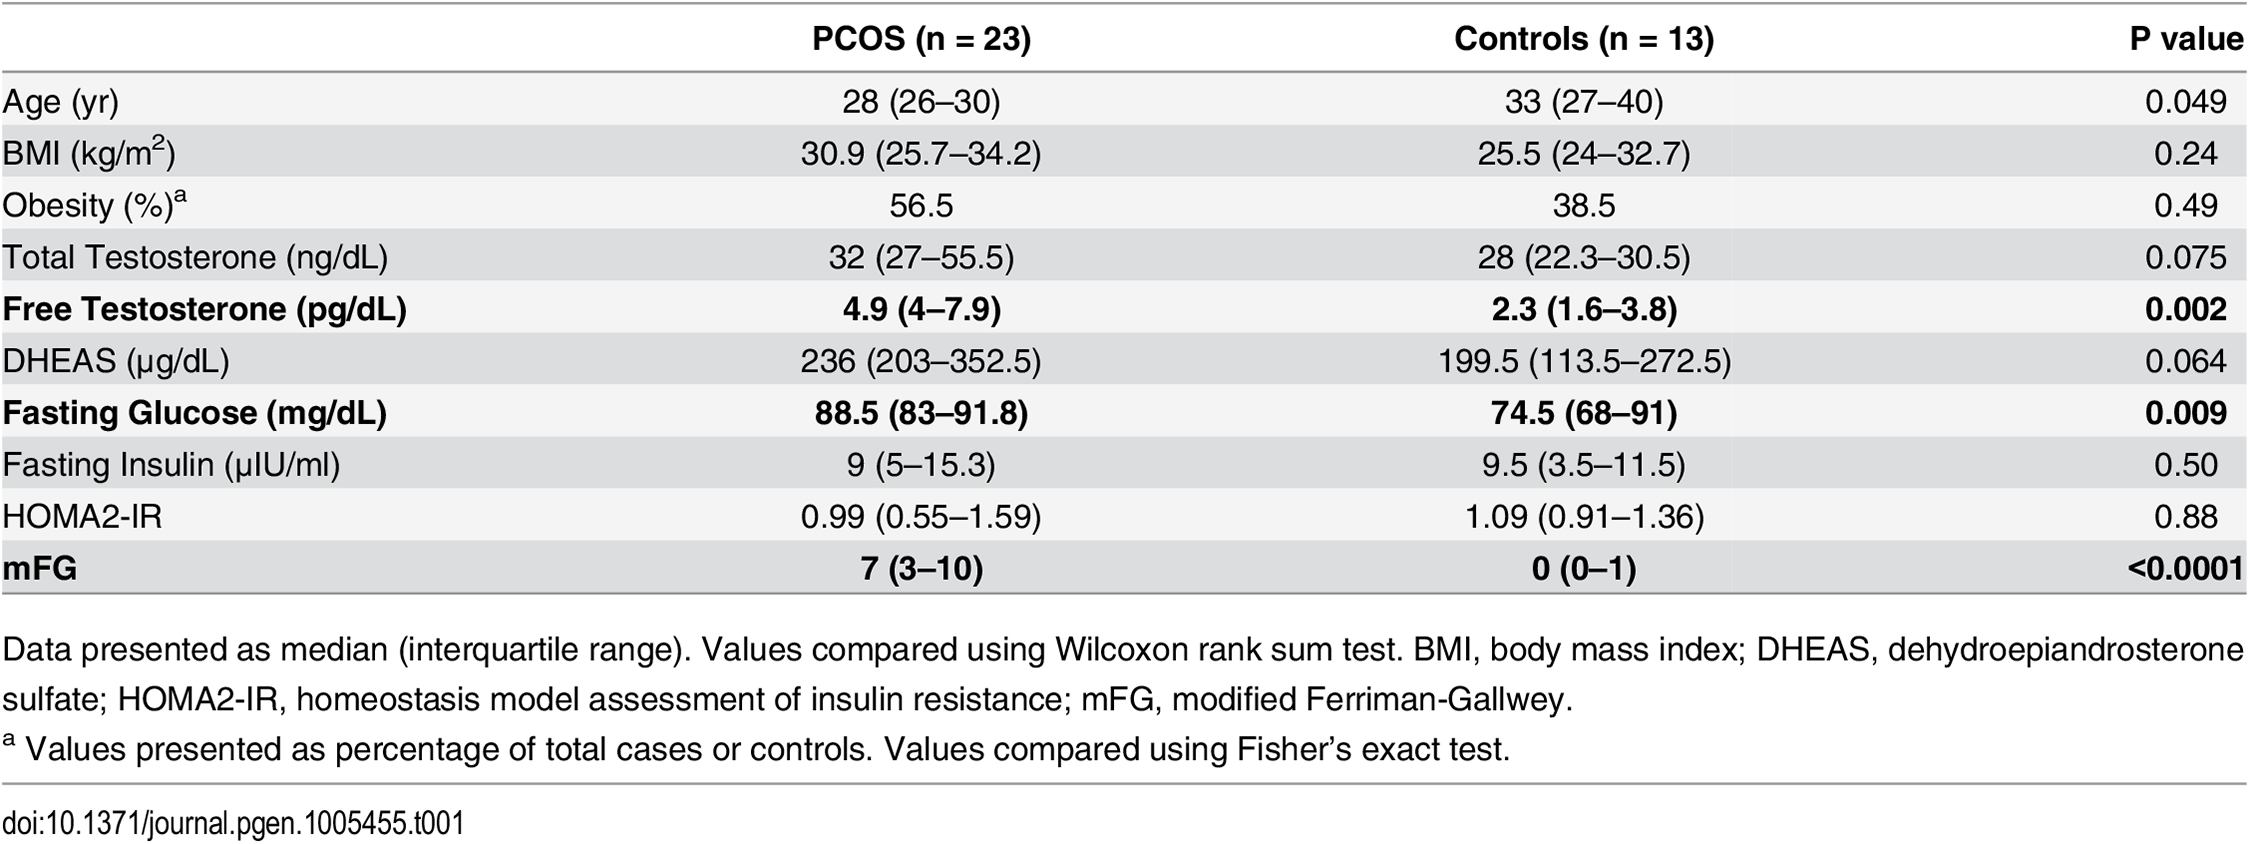 Baseline characteristics of PCOS and control subjects.